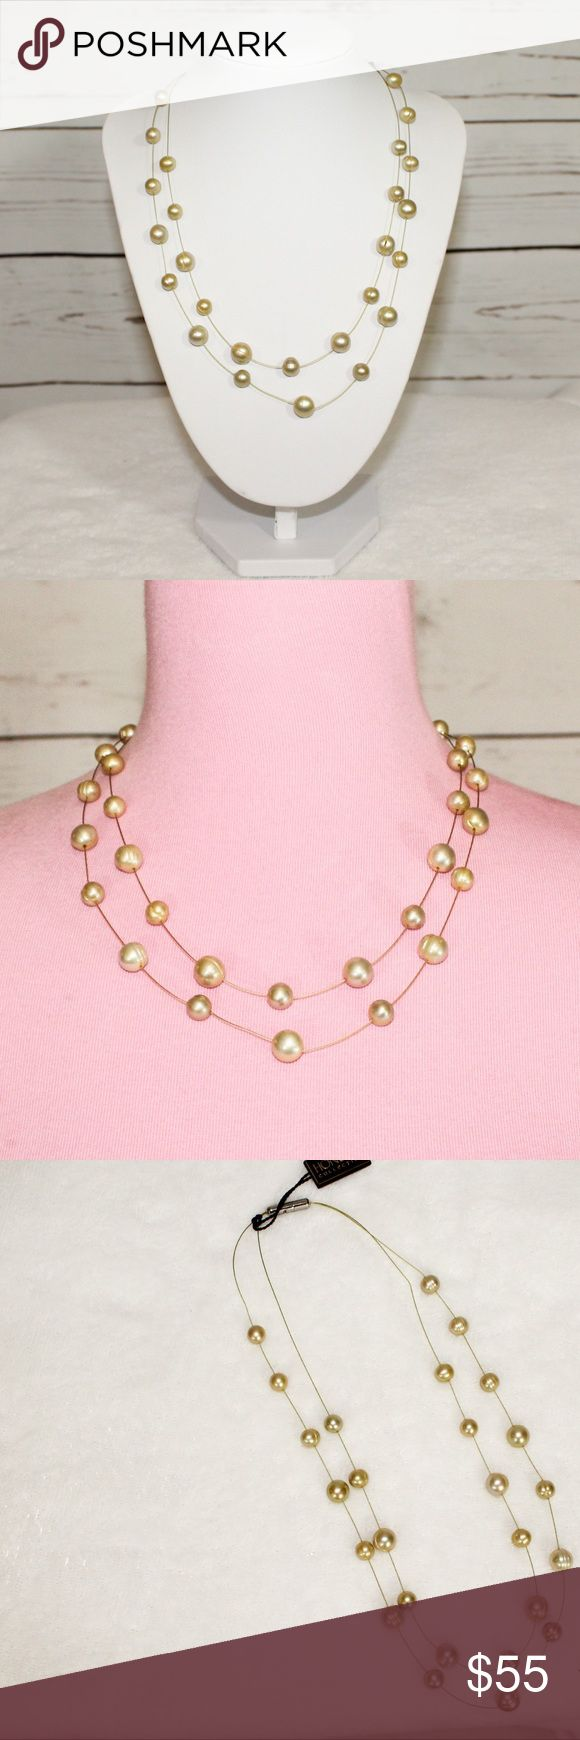 Honora Double Strand Freshwater Pearl Necklace NWT Honora Double Strand Freshwater Cultured Pearl Necklace. NWT. Very elegant and beautiful. This would be a great idea for a holiday or Christmas gift,  This would also be great to wear to a holiday or New Year's Eve party. Honora Jewelry